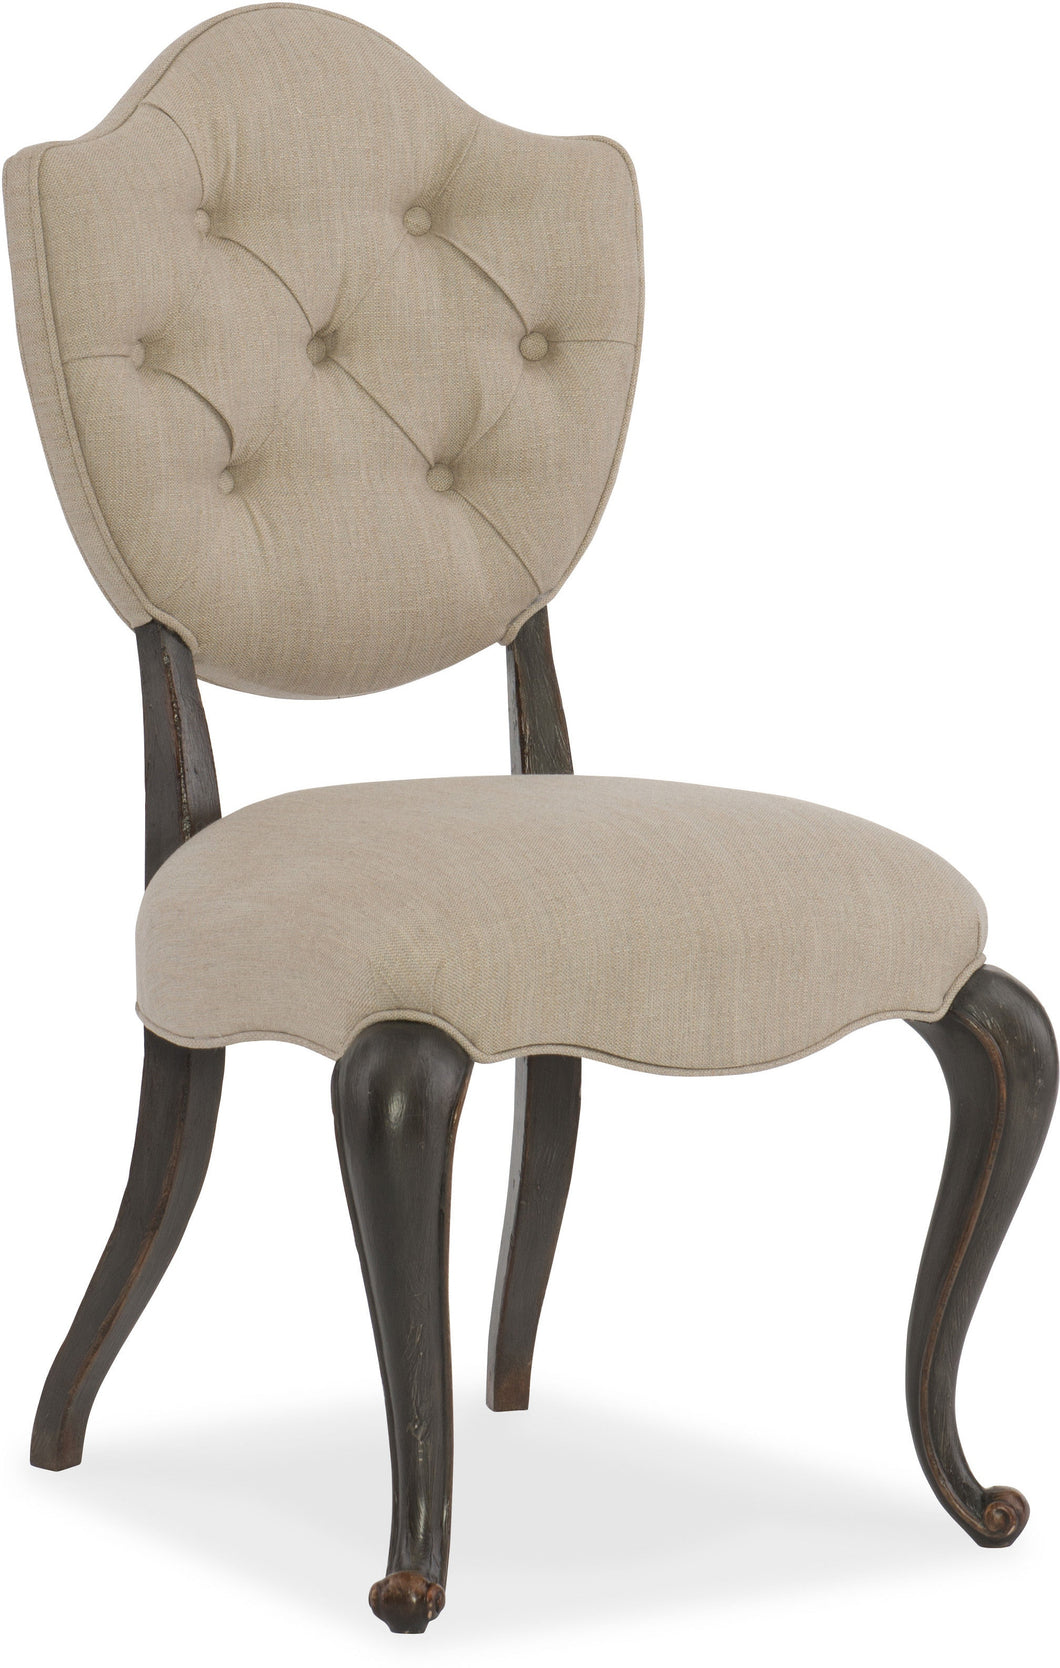 Hooker Furniture Dining Room Arabella Upholstered Side Chair - Dream art Gallery